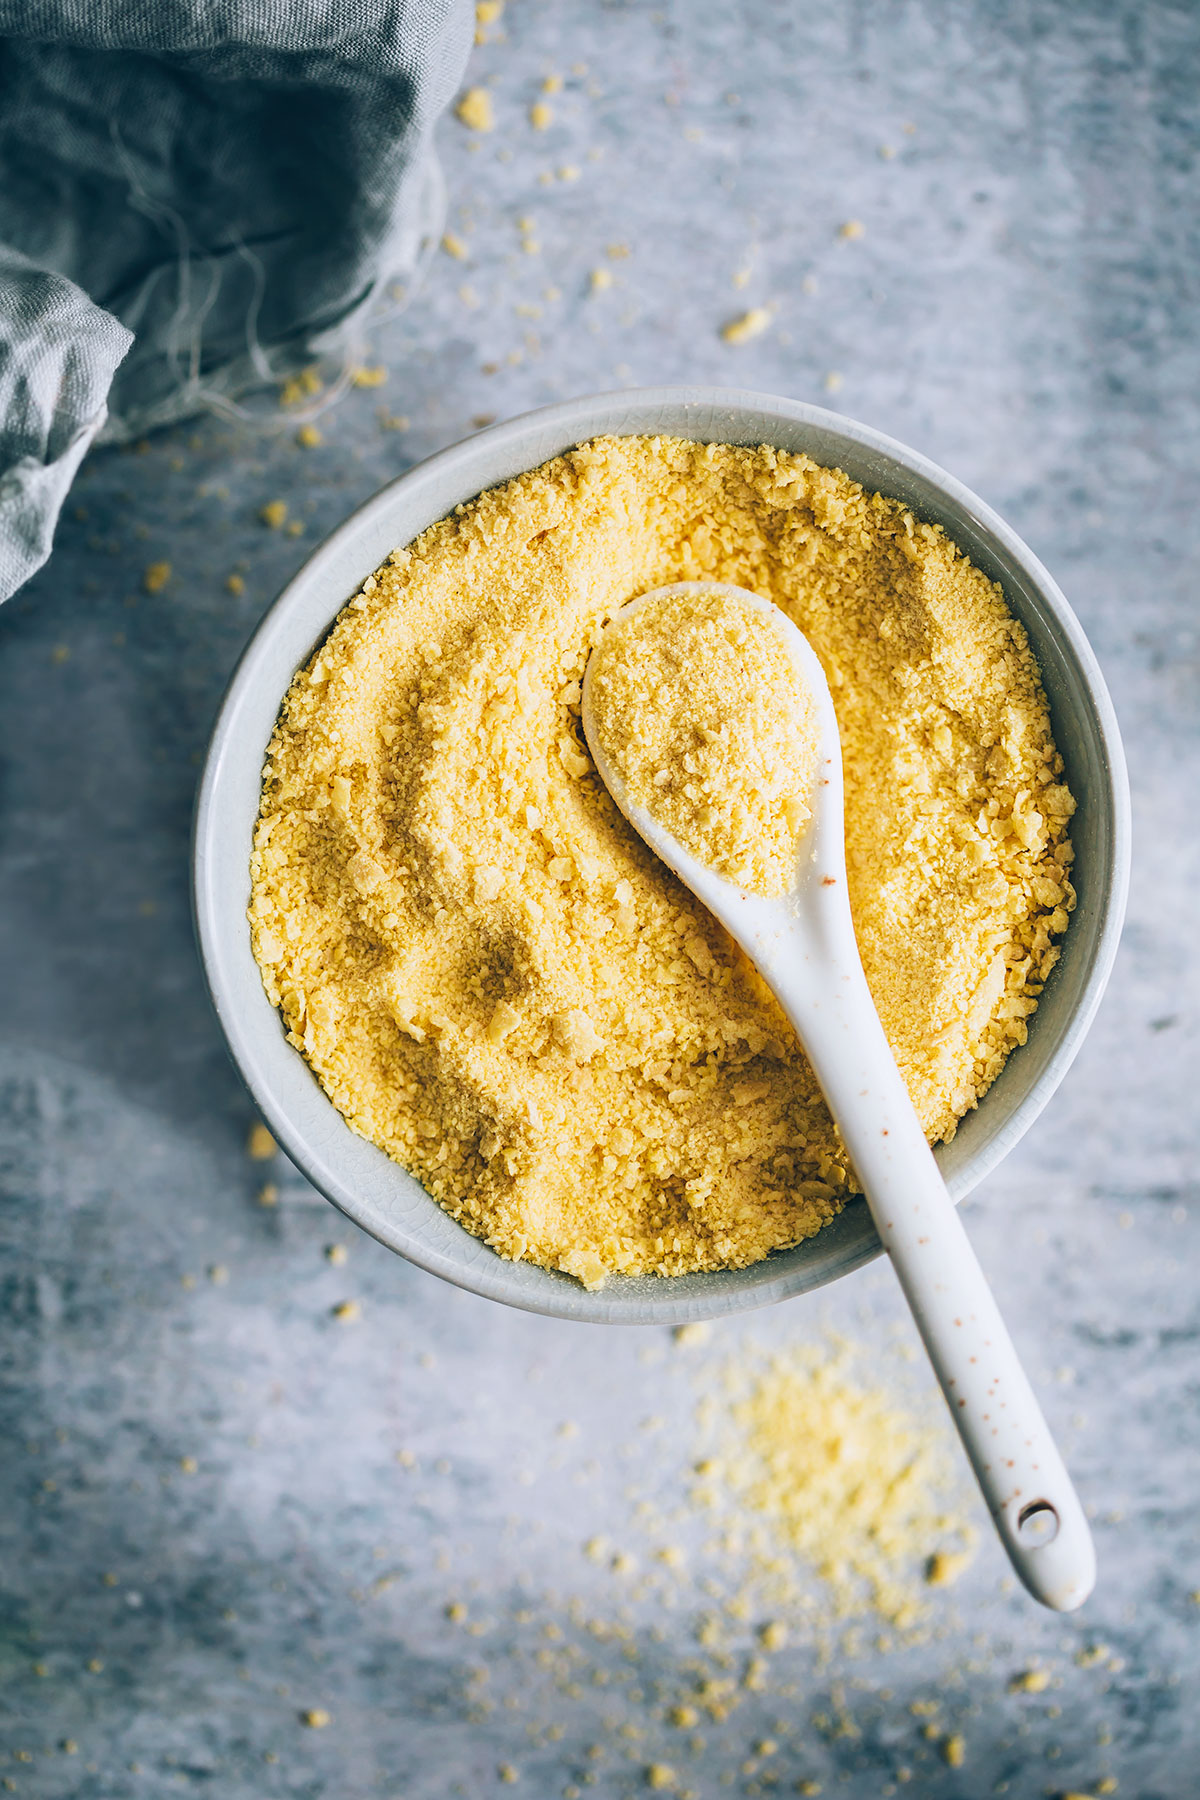 A Nutritionist Explains: What's the Deal with Nutritional Yeast?